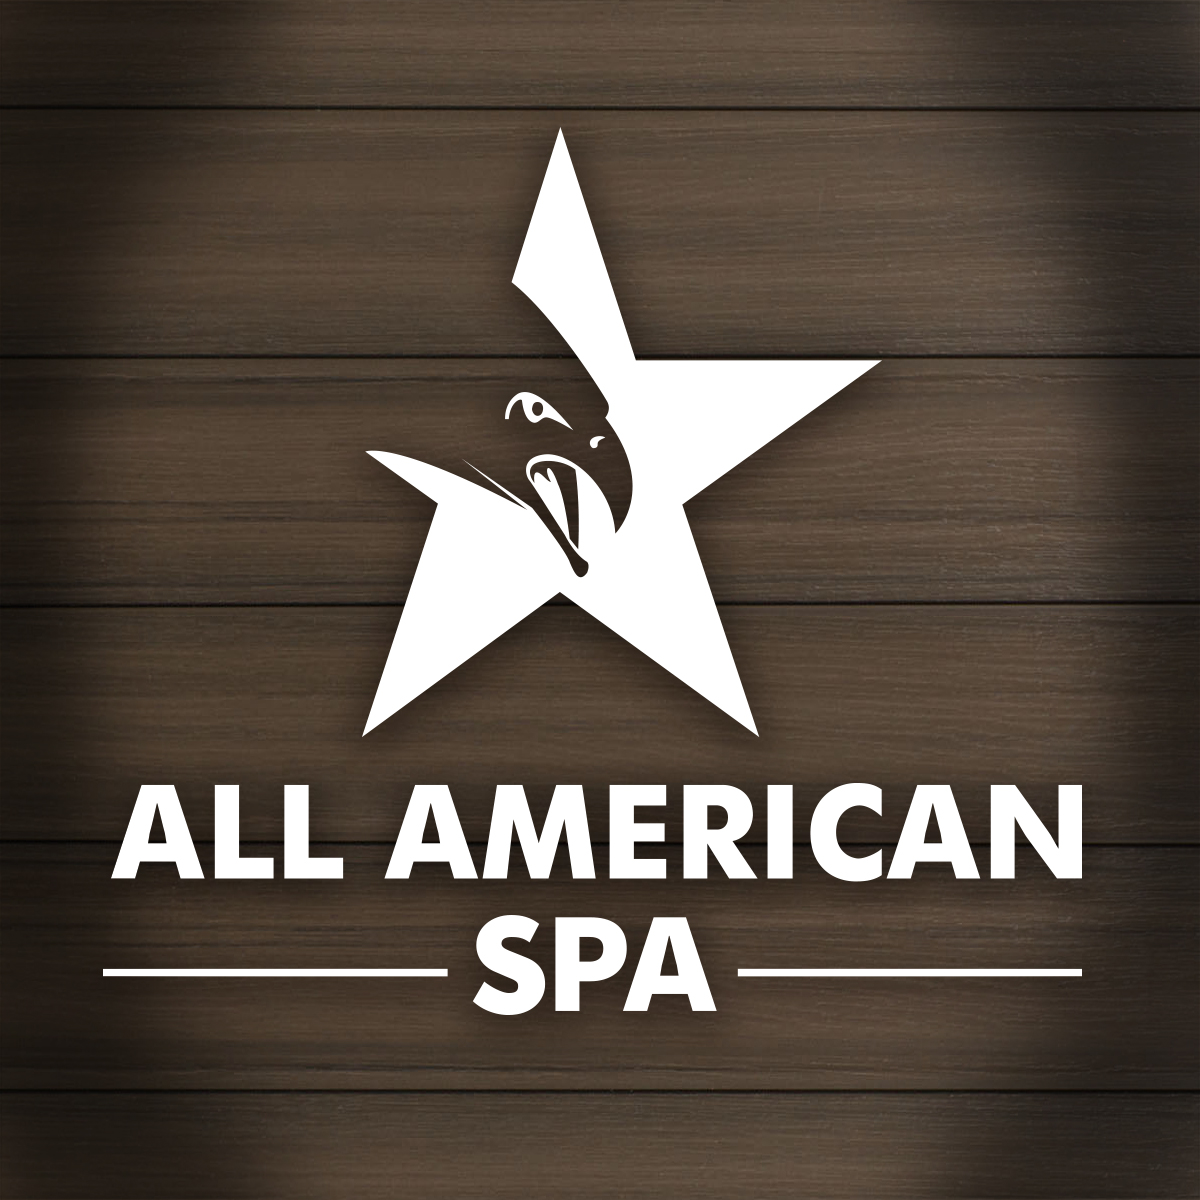 Hot Tub Site Preparation All American Spa Regulations For Wiring Up A